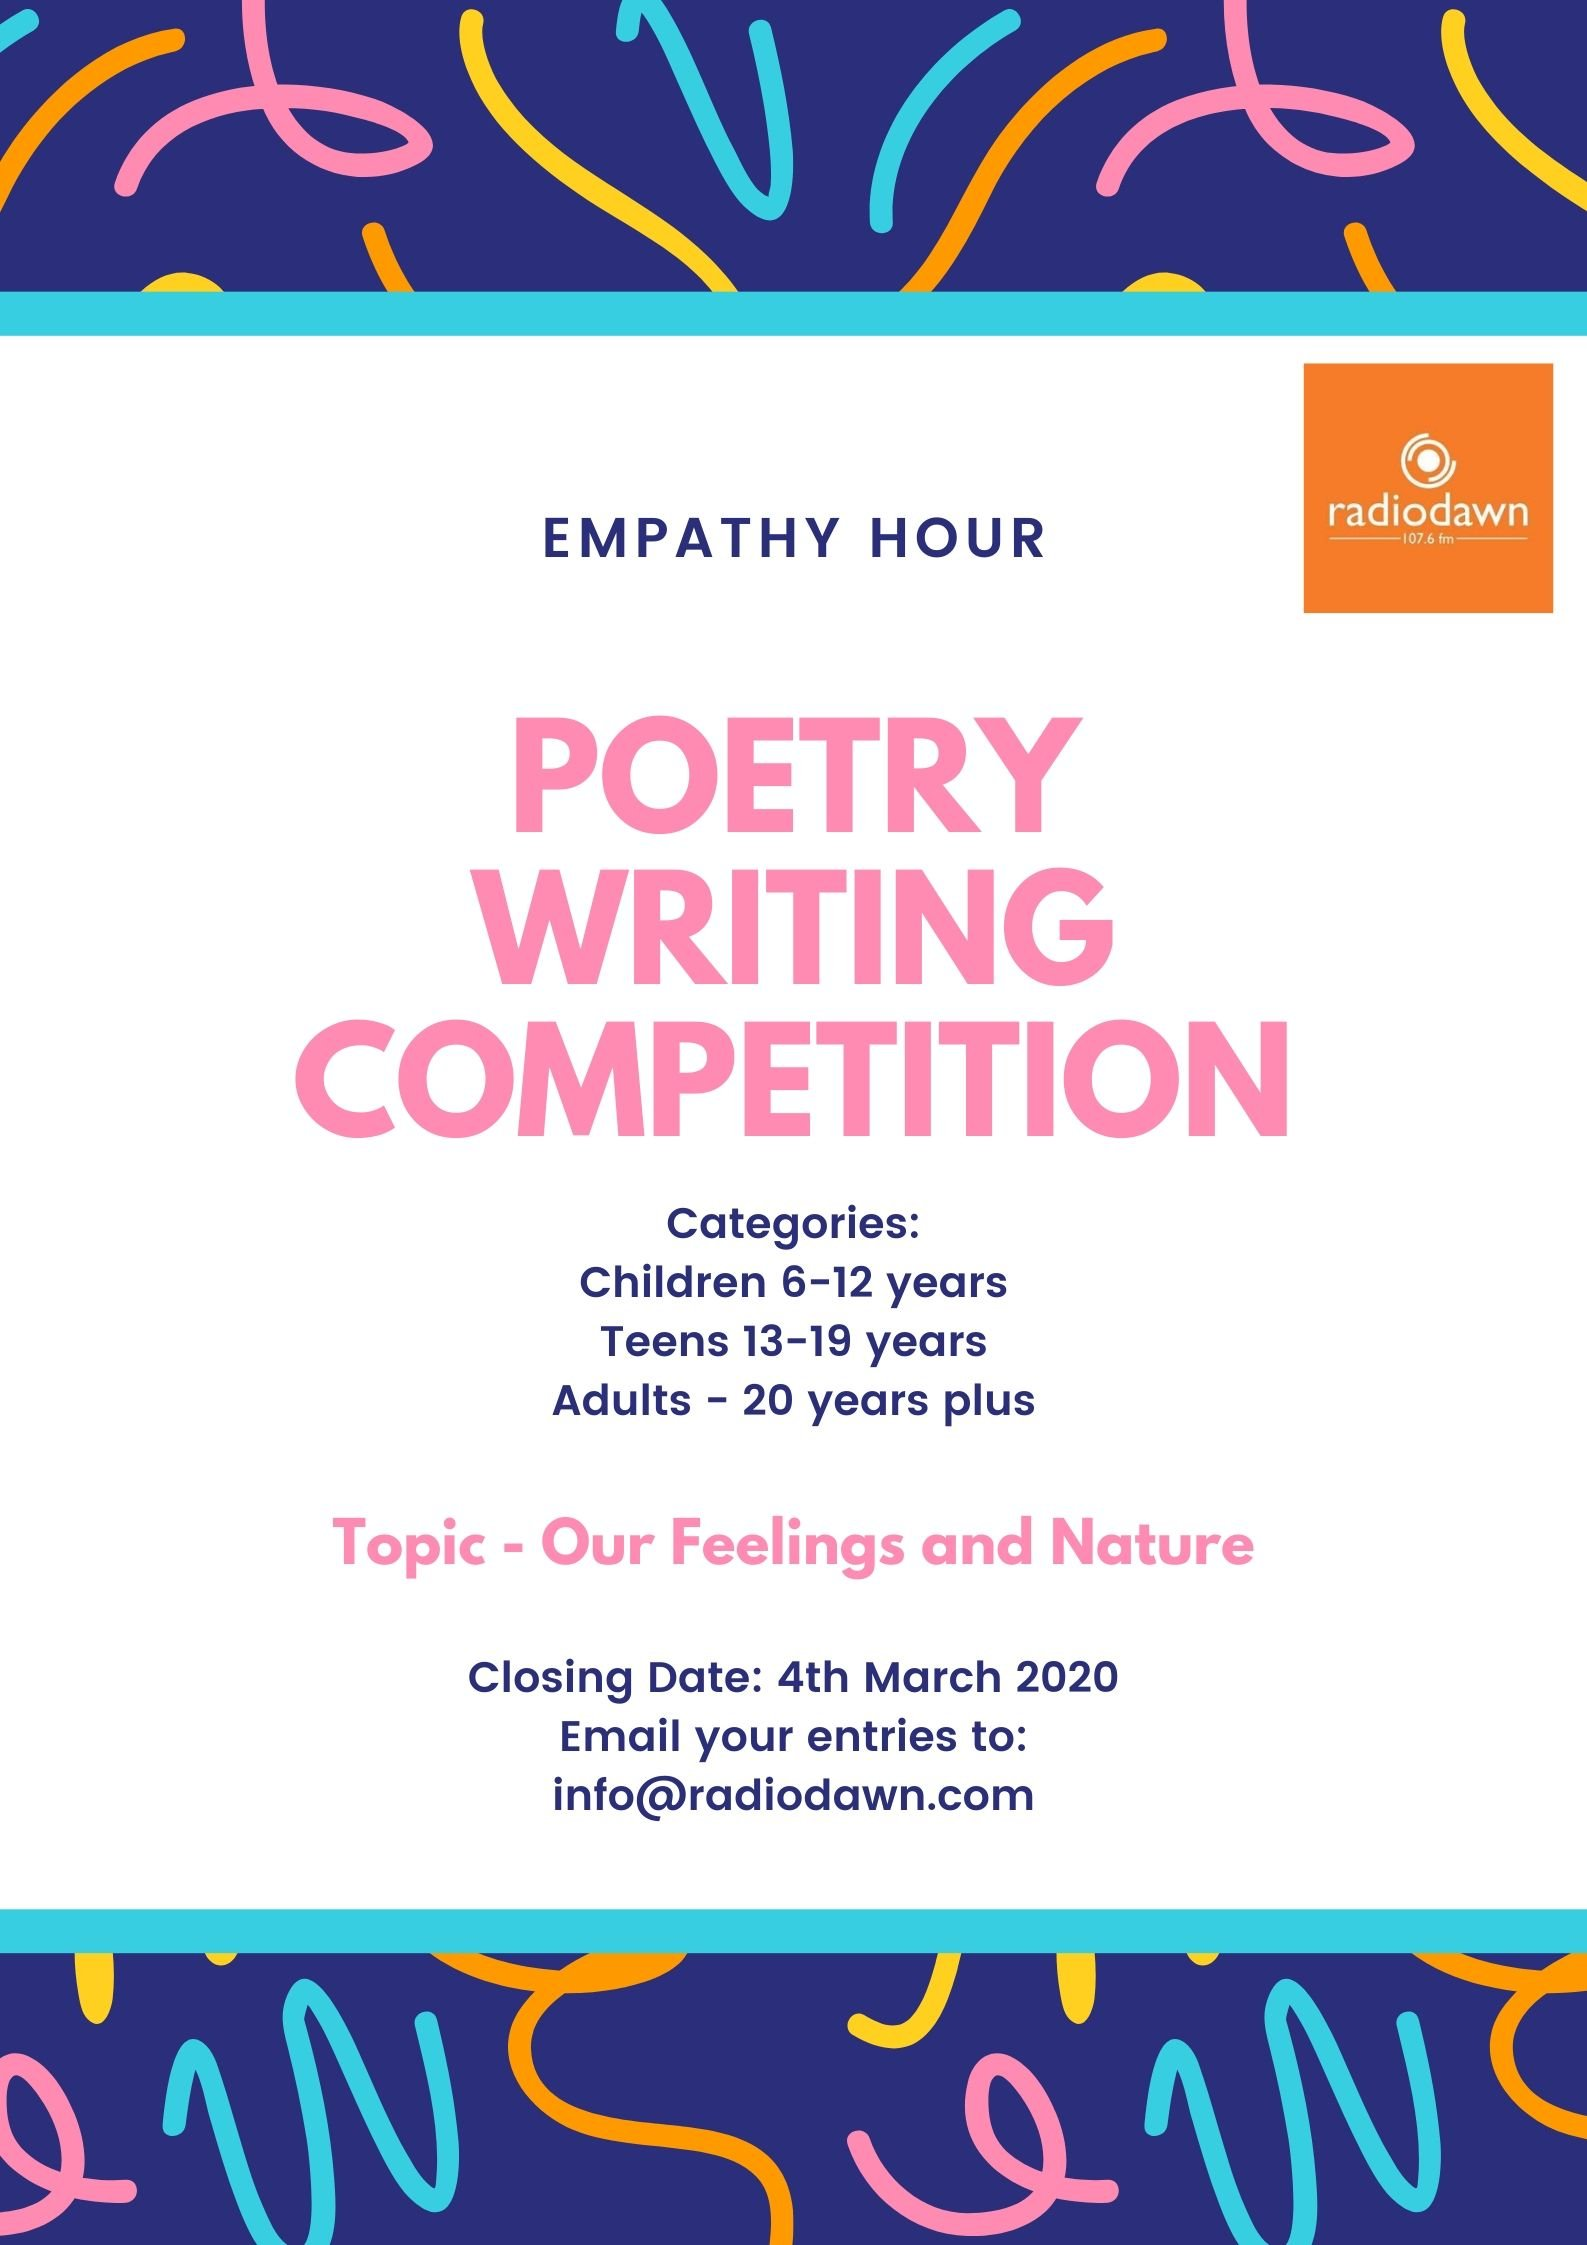 Poetry Writing Competition with the Empathy Hour